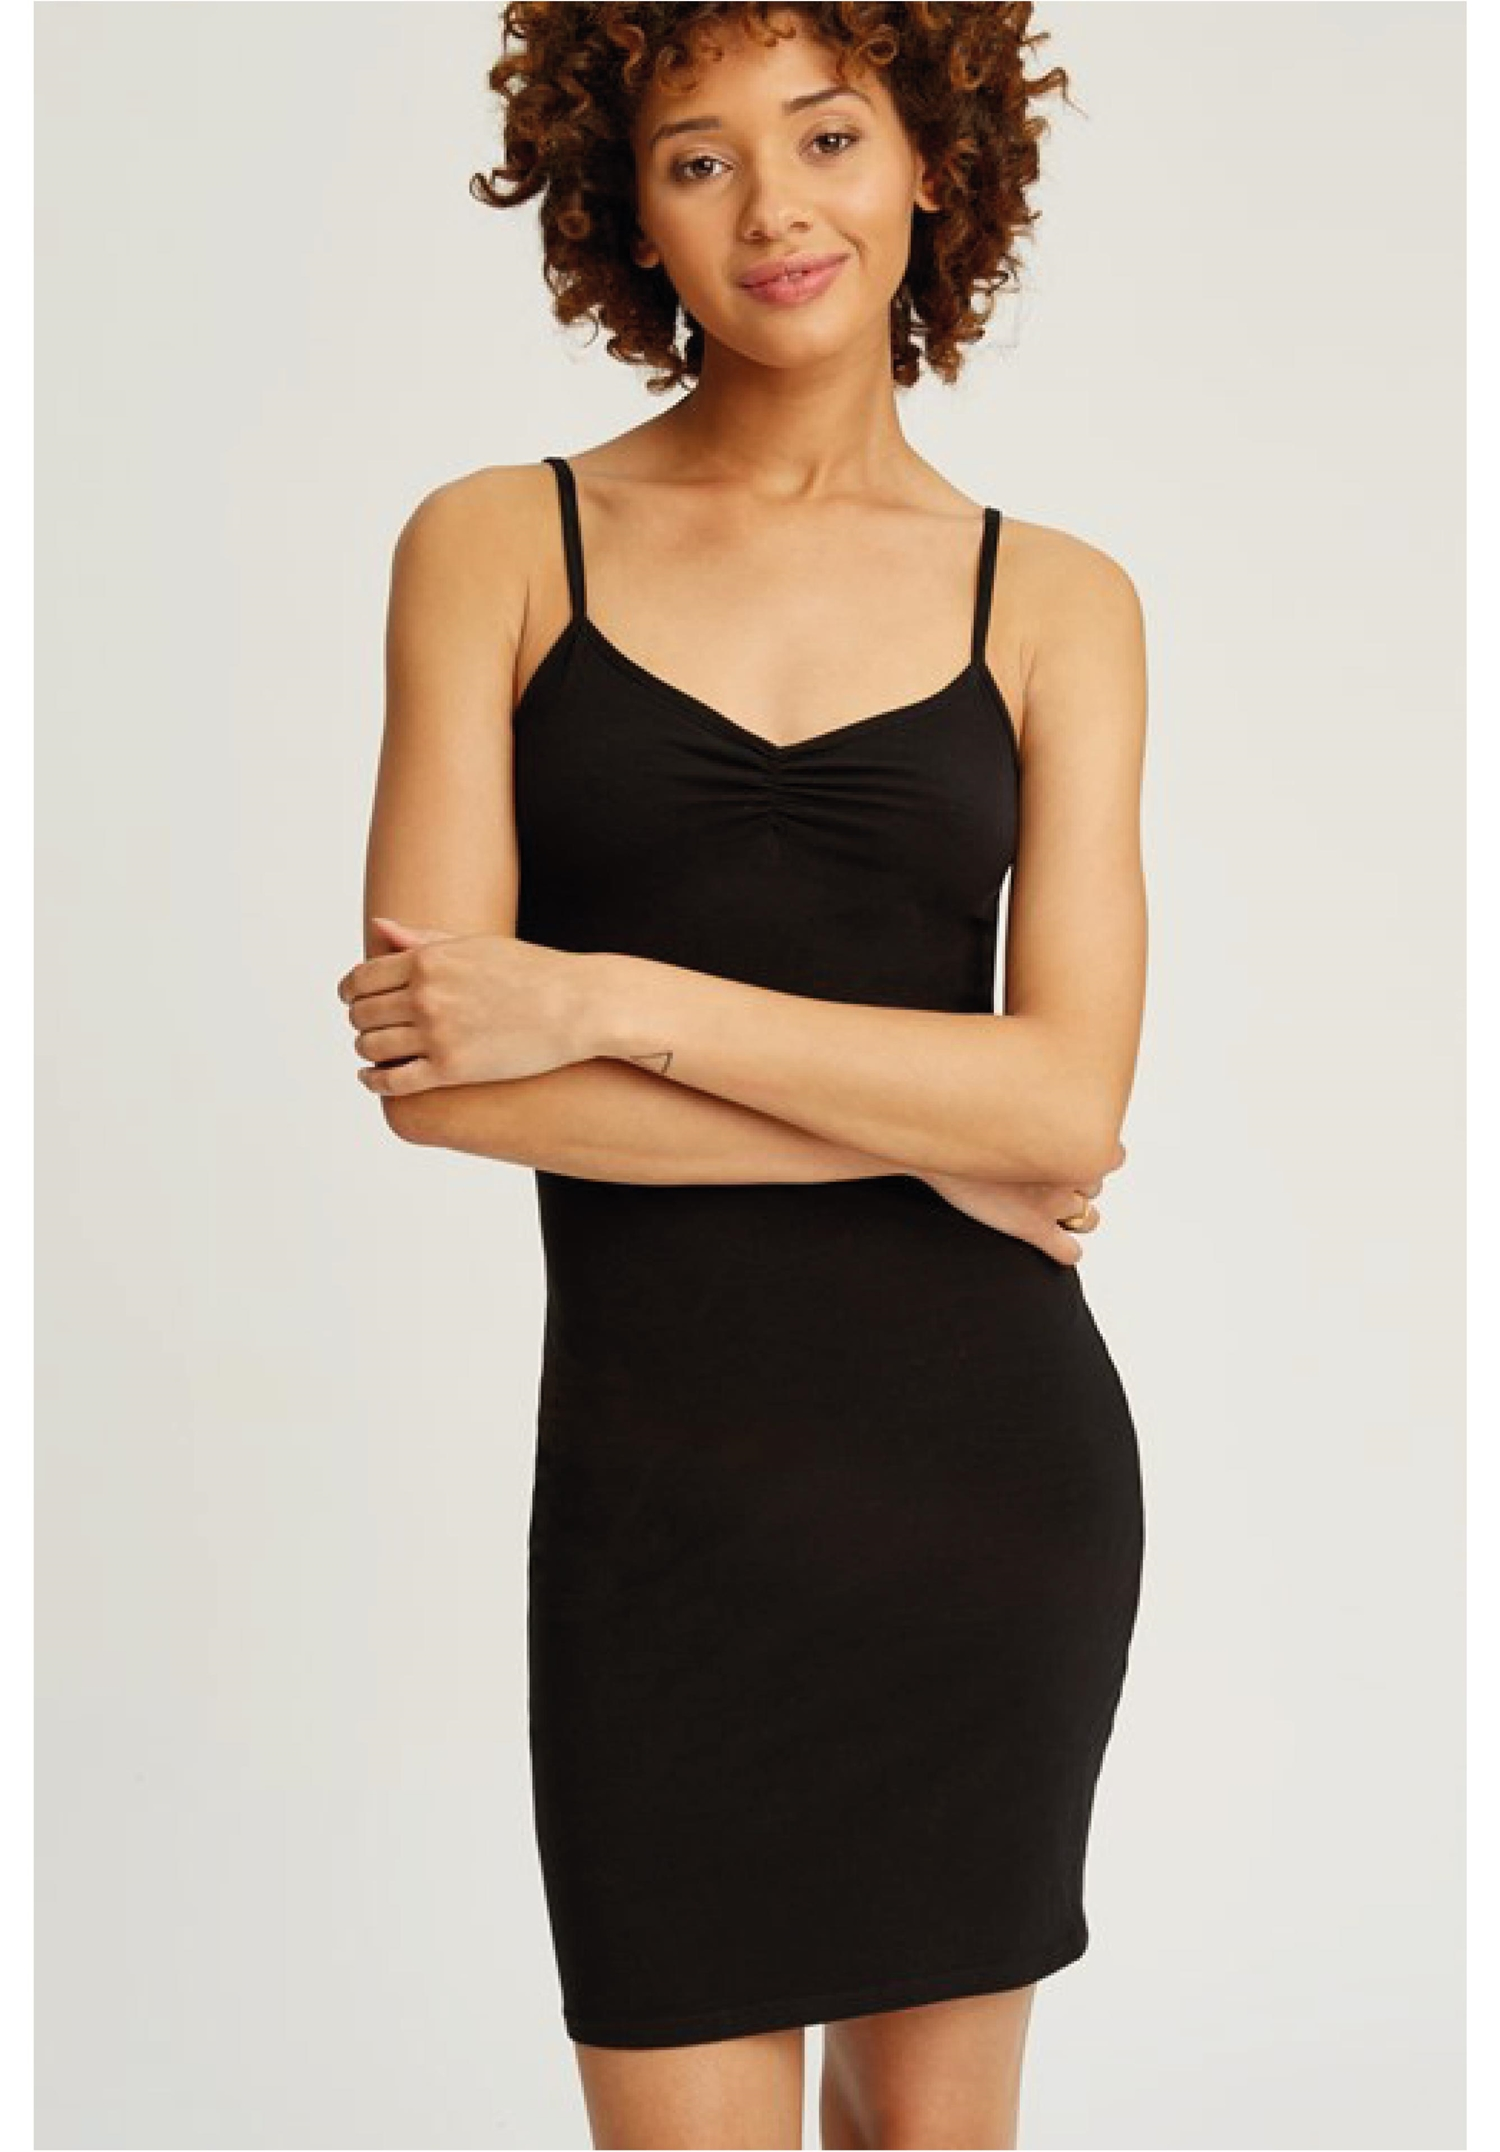 Black Camisole Slip Dress Black Slip Dress All Dress